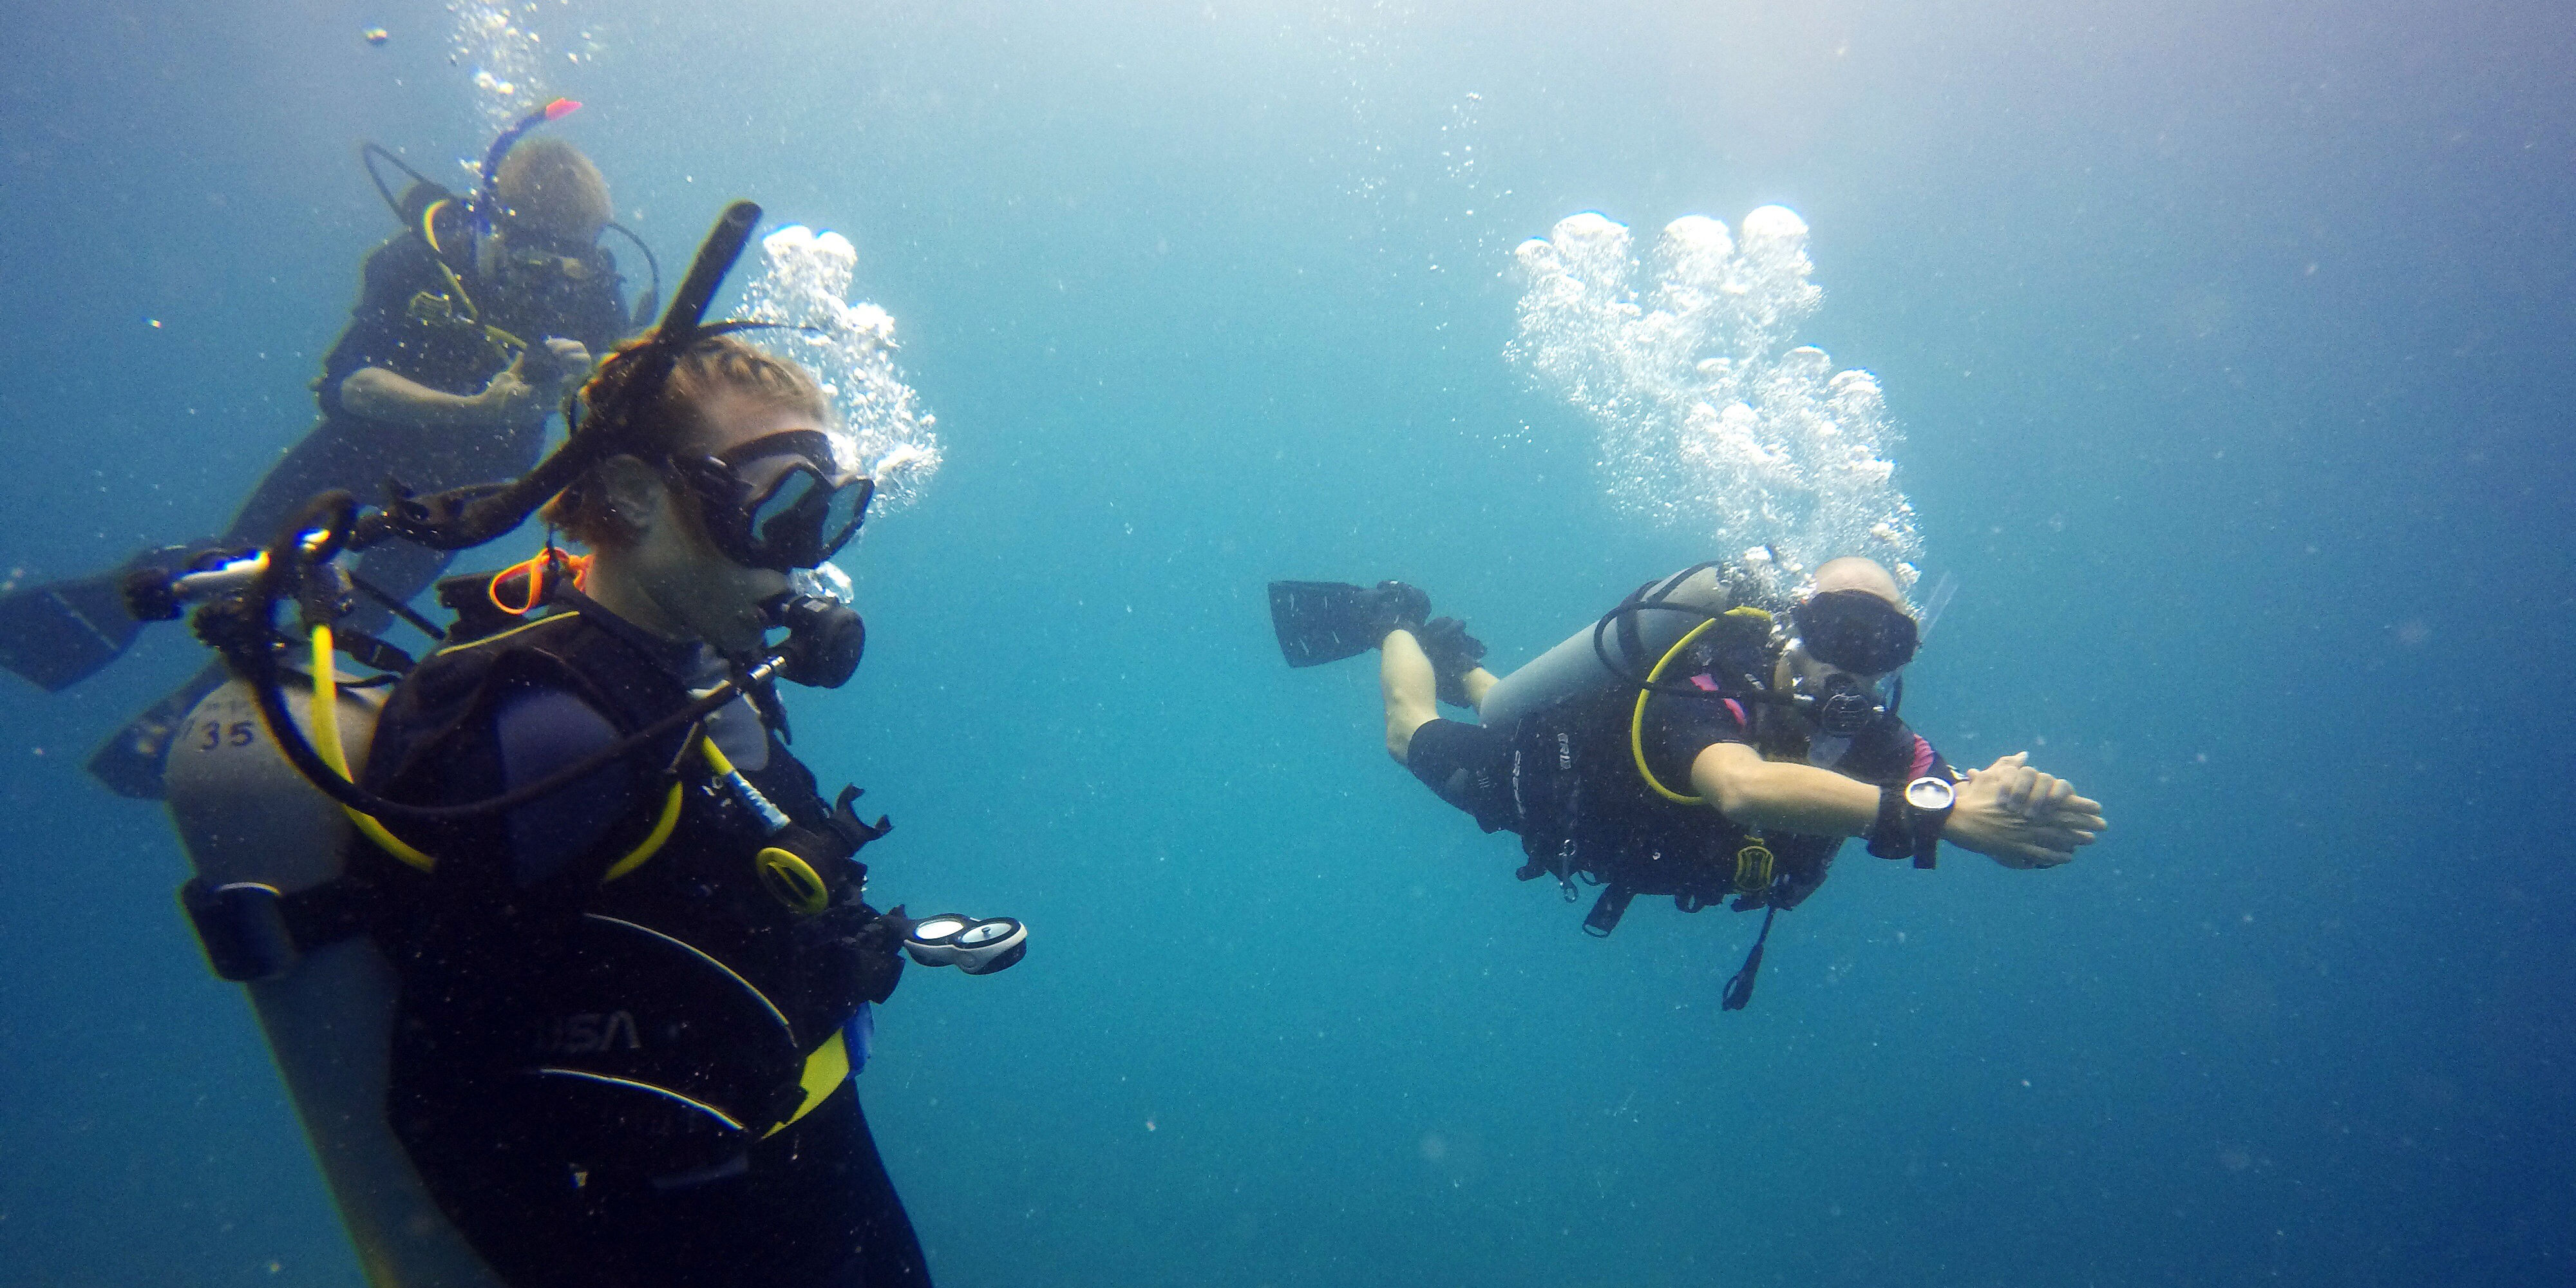 These participants complete data collection dives while on marine conservation programs with GVI.